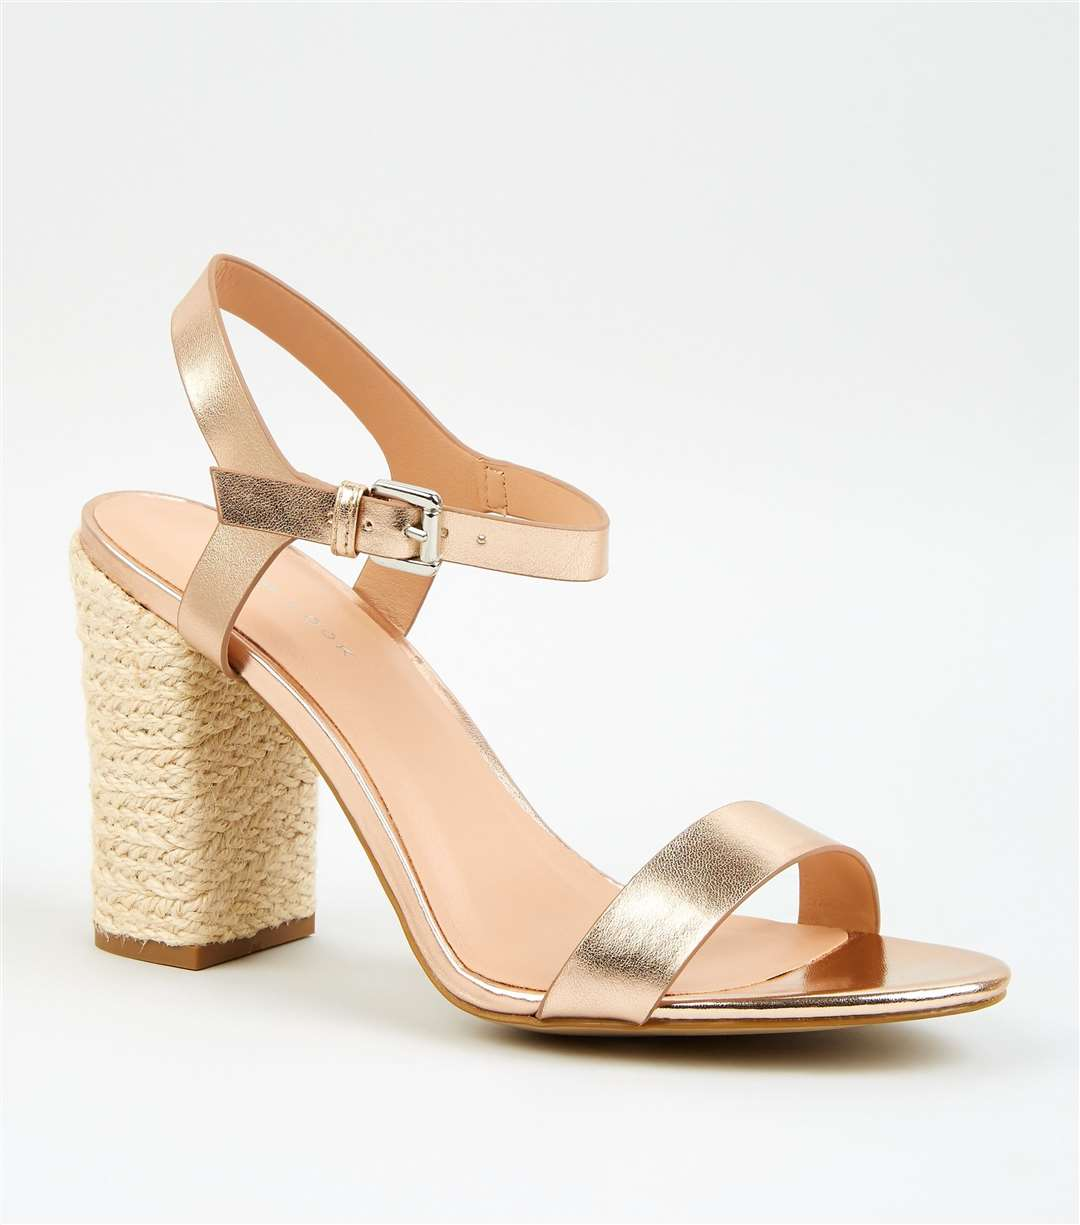 CHUNKY SANDALS New Look Rose Gold Leather-look Espadrille Block Heel Sandals, £22.99 (13640615)